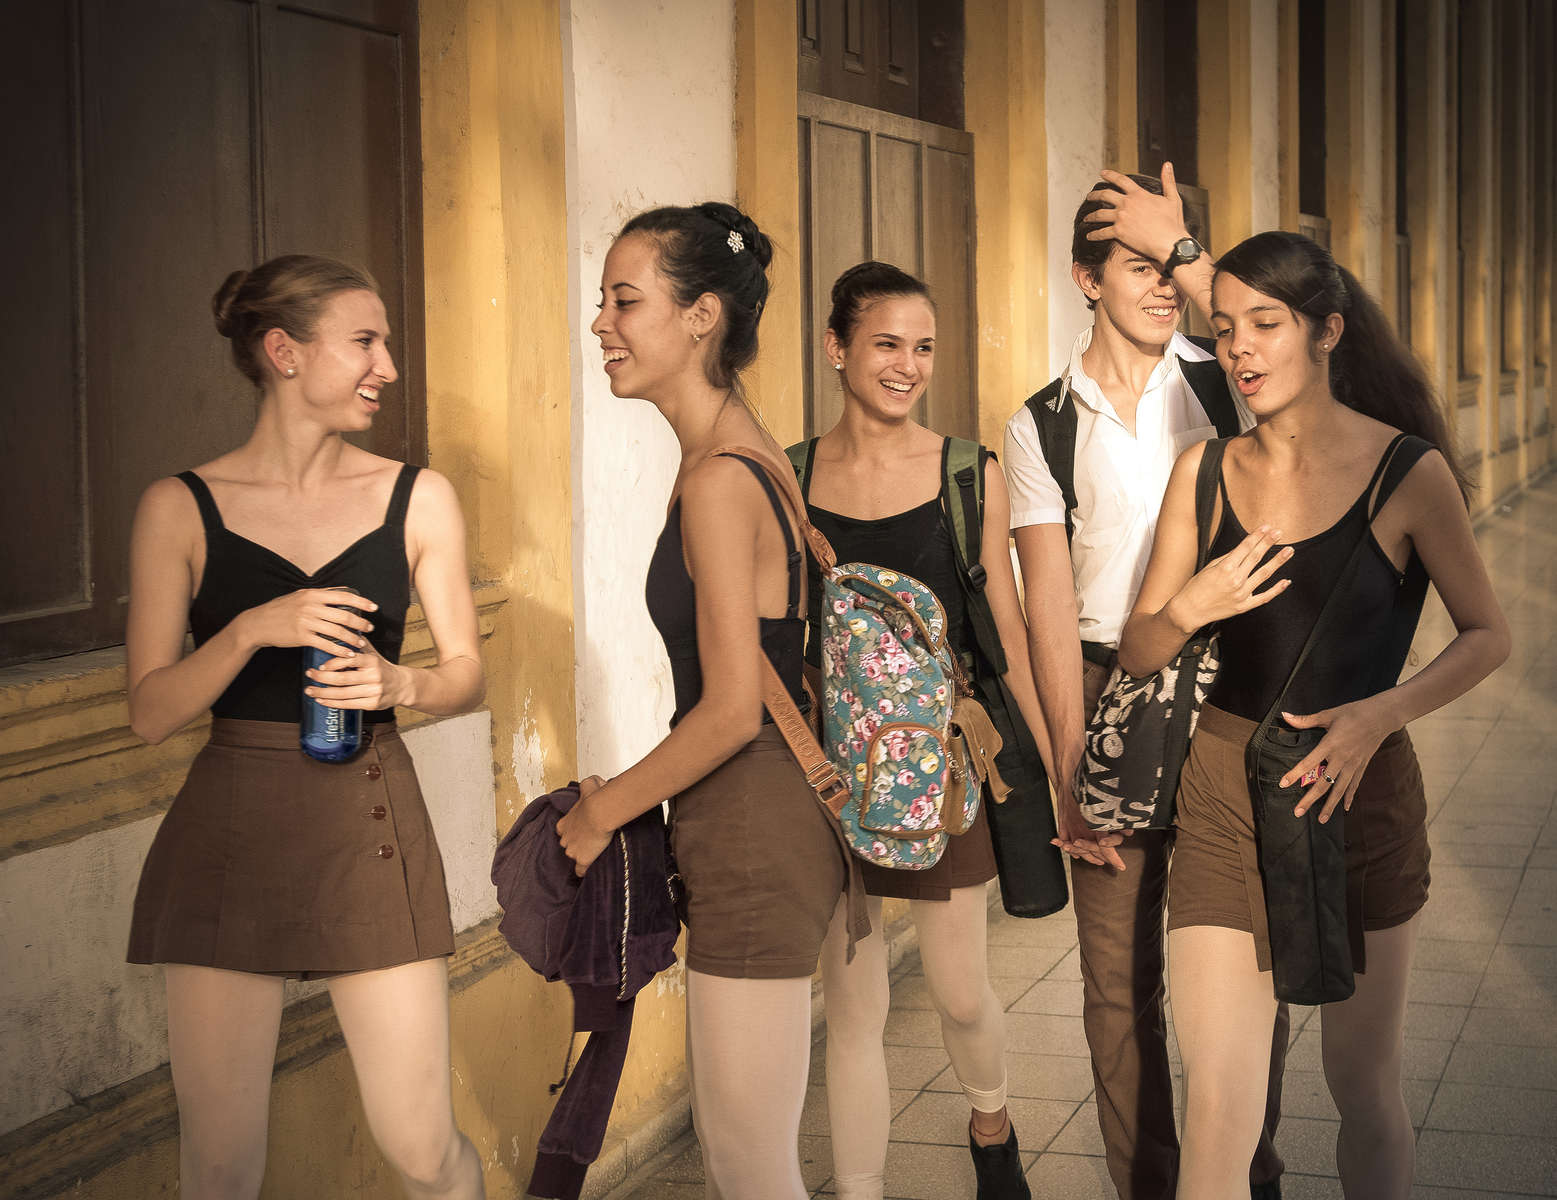 Catherine Conley shares a moment with other students after finishing a day of classes at the Cuban National School of Ballet in Havana, March 13, 2017. ©2018 Alex Garcia